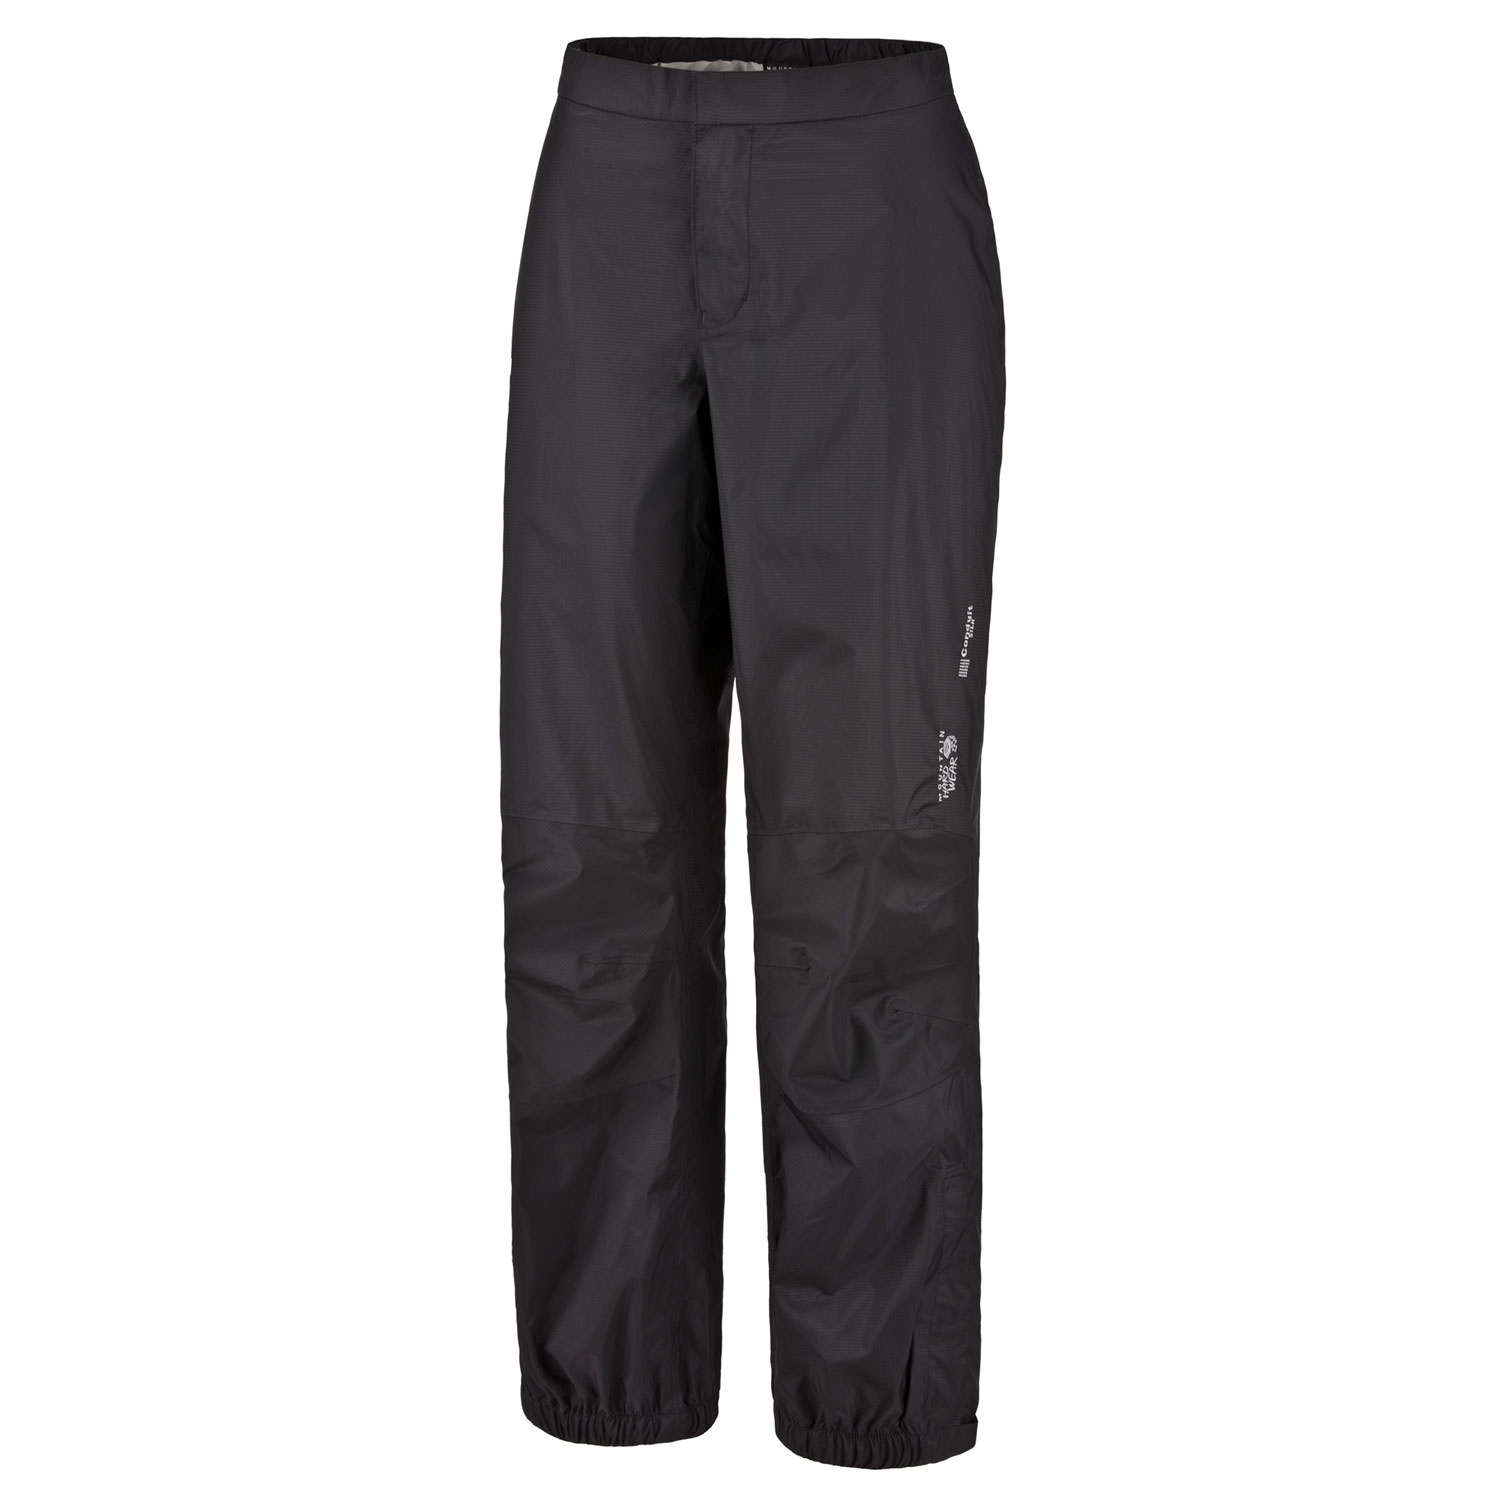 "Key Features of the Mountain Hardwear Epic Rain Pants: Avg. weight: 8oz; 221g Inseam: 32"" Fabric: Ark Ripstop 2.5L (100% nylon) DryQ Elite: 100% waterproof, most breathable, air-permeable, no-wait comfort Articulated knees for mobility 9"" ankle zips for easy on/off - $65.95"